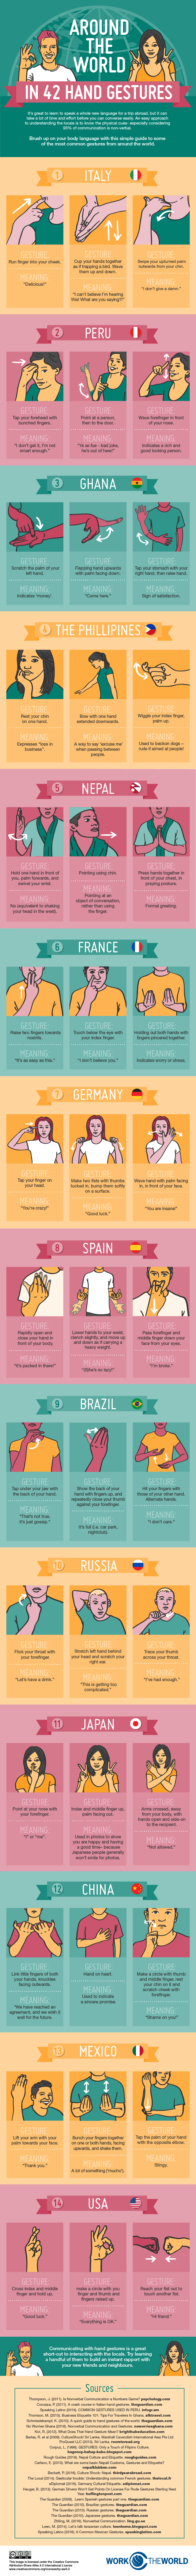 Around the World in 42 Hand Gestures [Infographic]